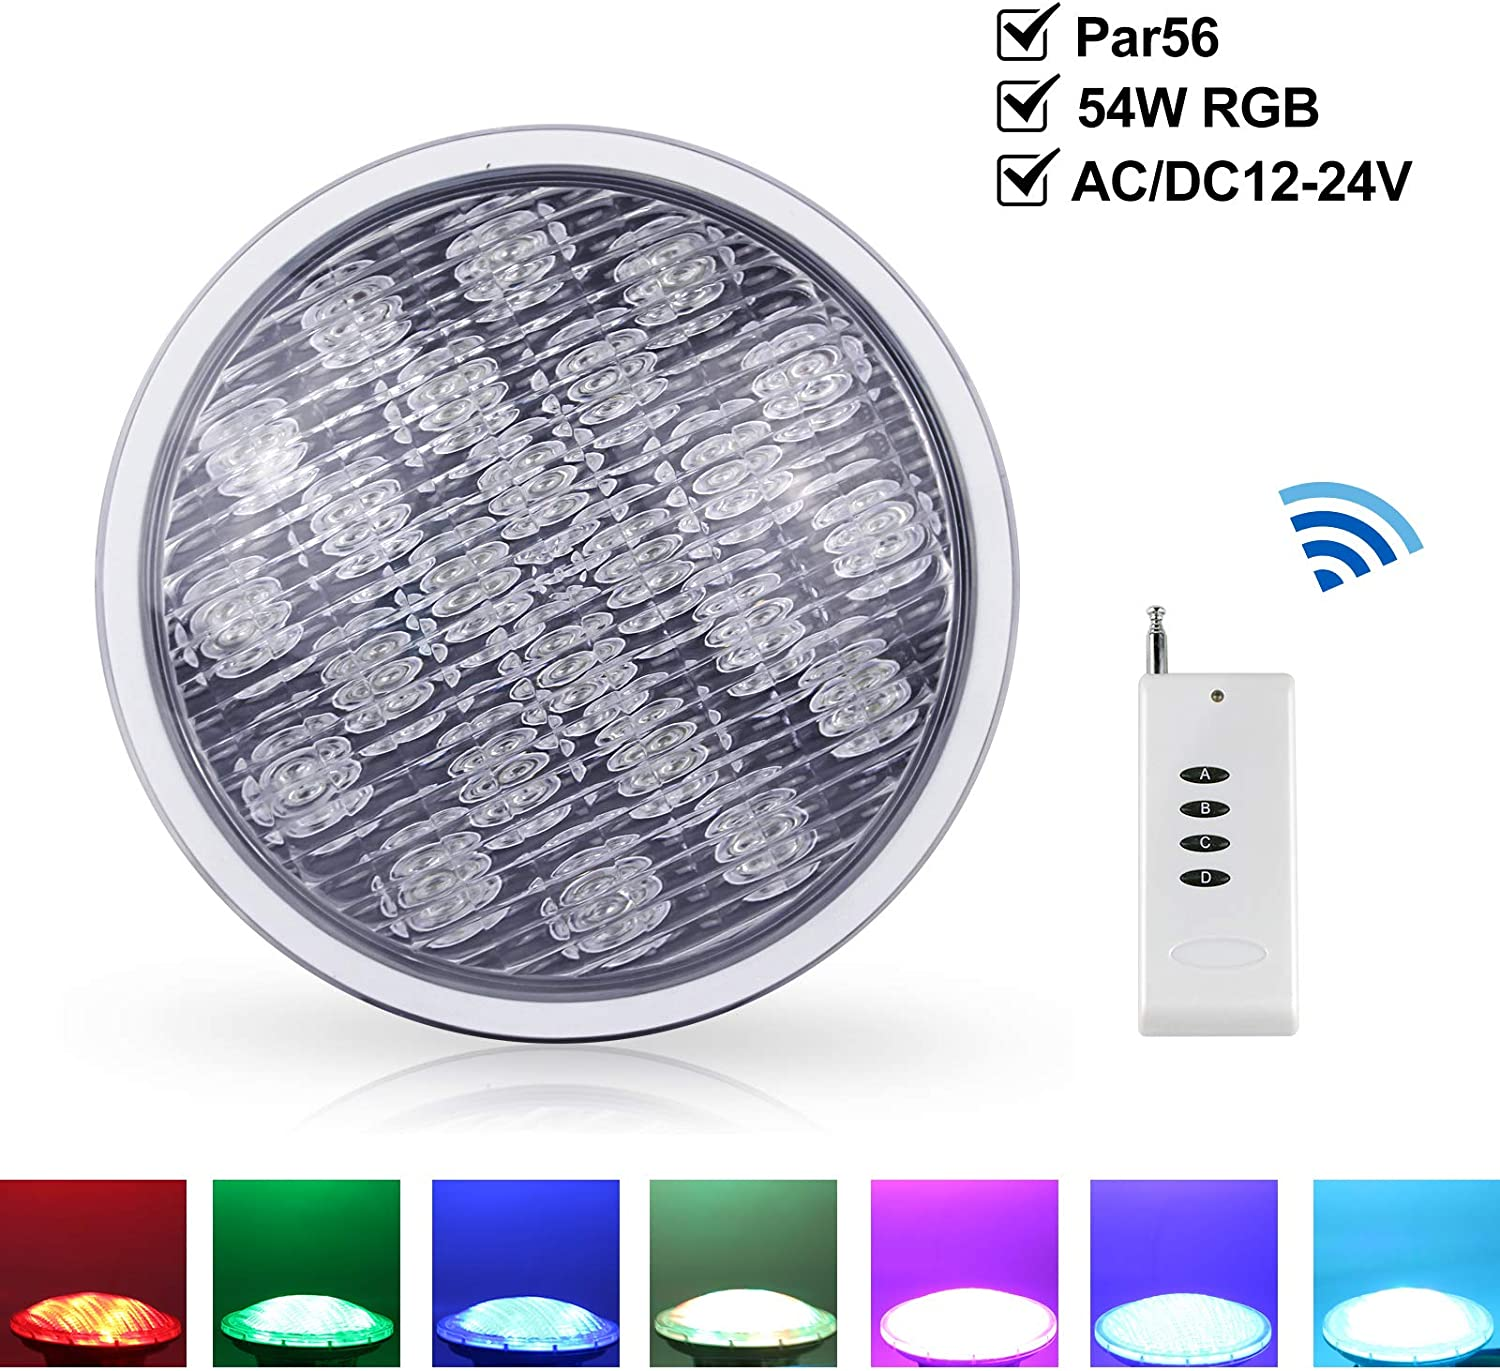 Roleadro Par 56 Led Para Piscina 54W Foco Piscina con Control Remoto,IP68 Led Sumergible de Lámpara Impermeable RGB para Decoración Piscina Swimming Pool Lights 56 Efectos de Luz [AC/DC 12-24V]